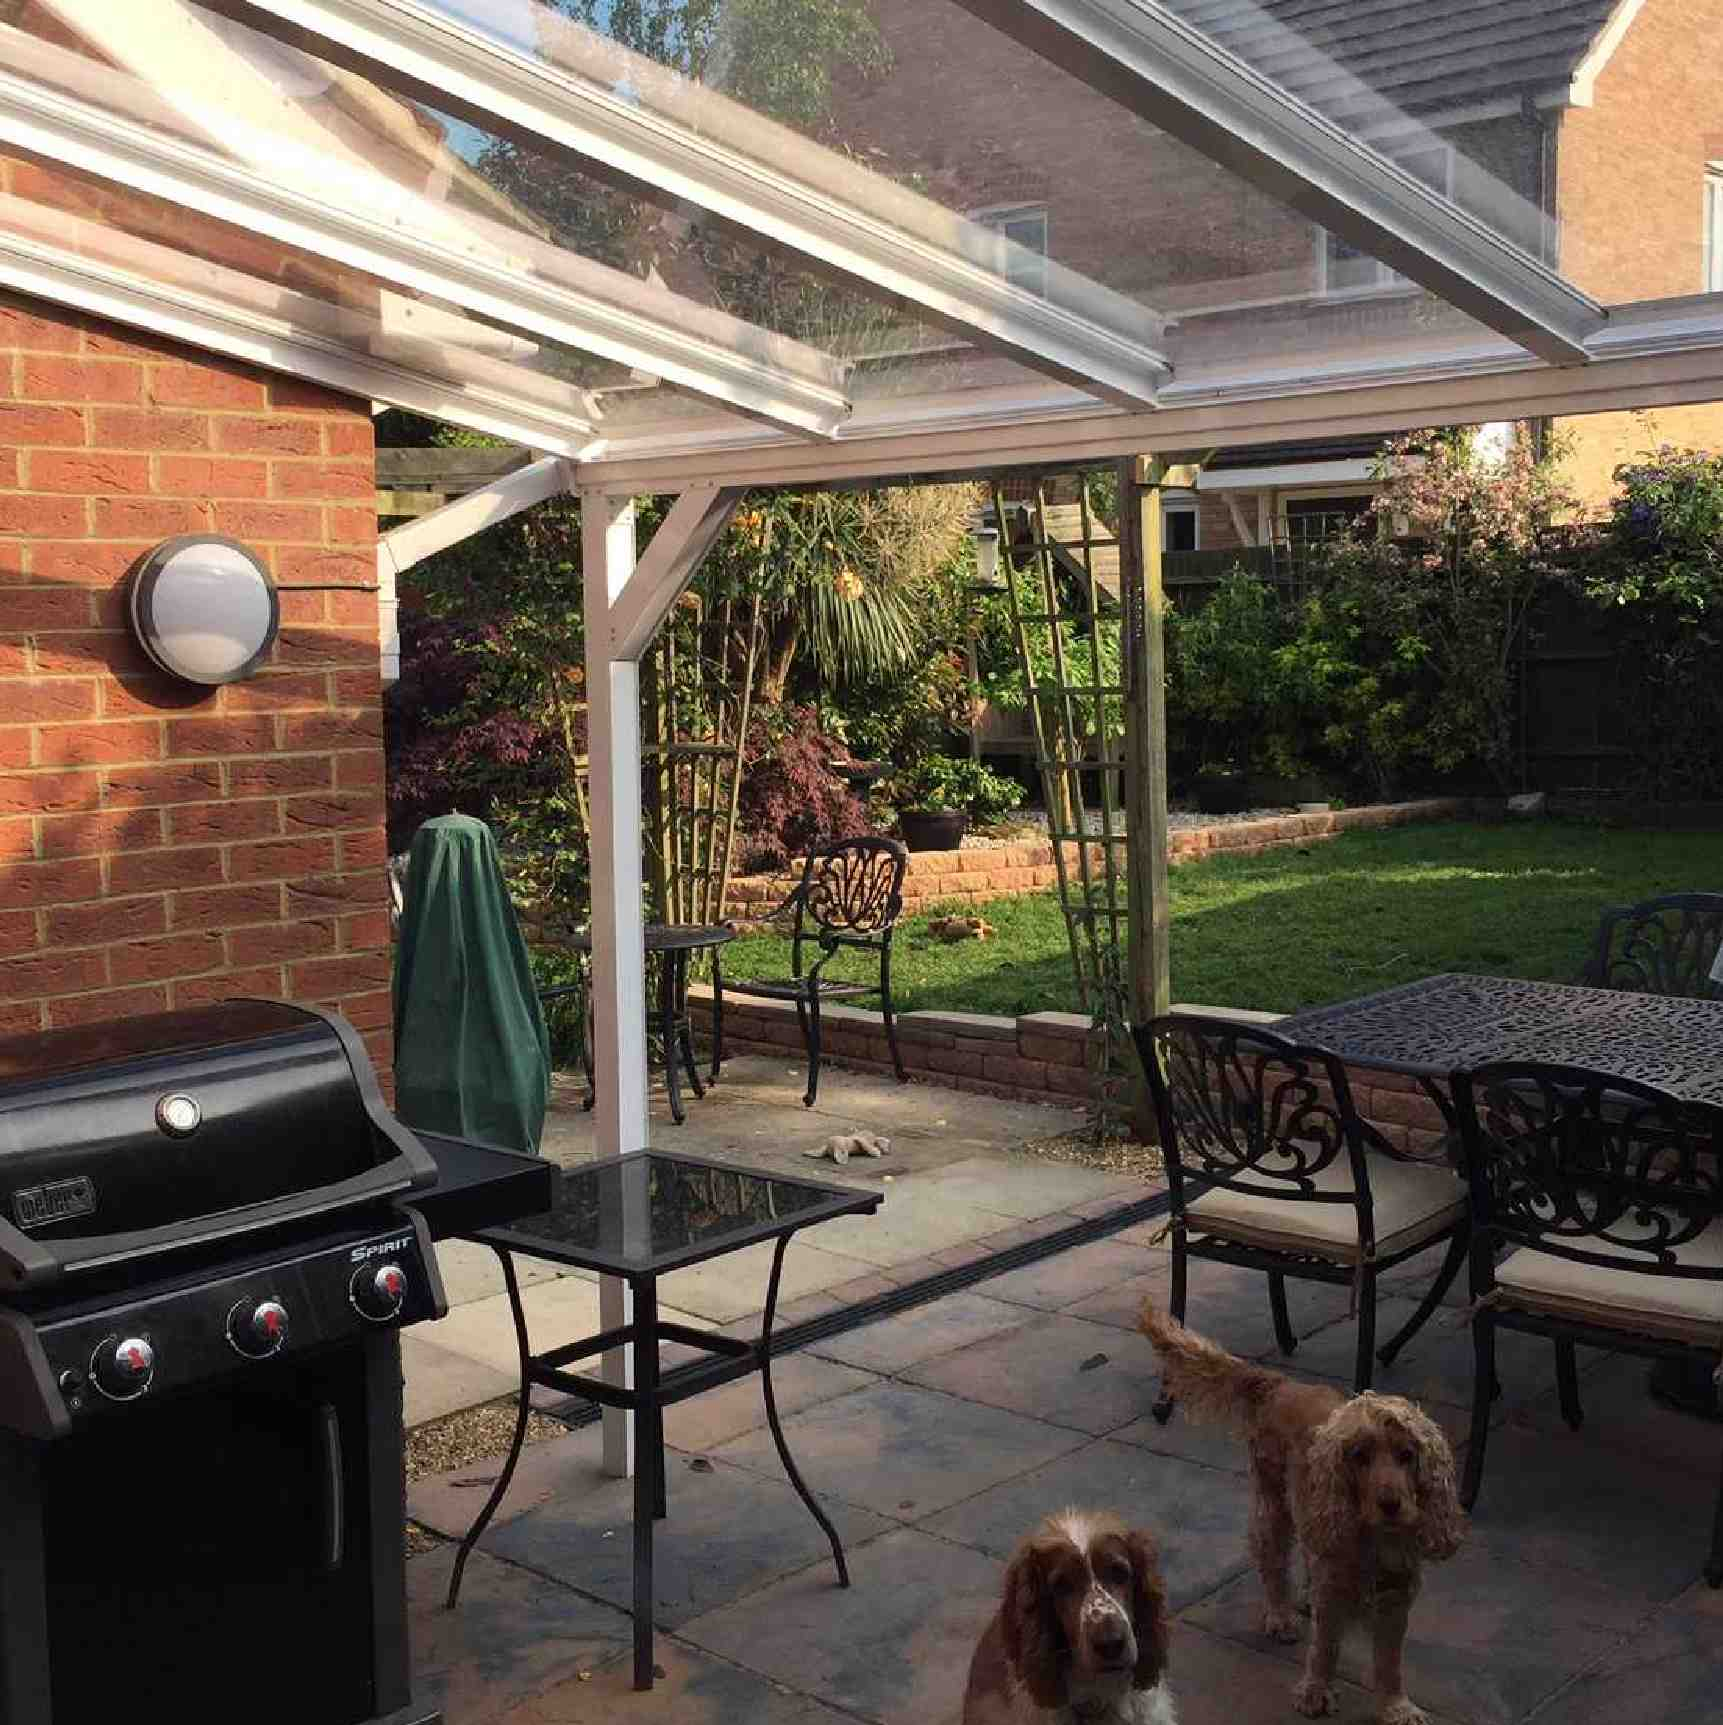 Omega Verandah with 16mm Polycarbonate Glazing - 3.5m (W) x 3.5m (P), (3) Supporting Posts